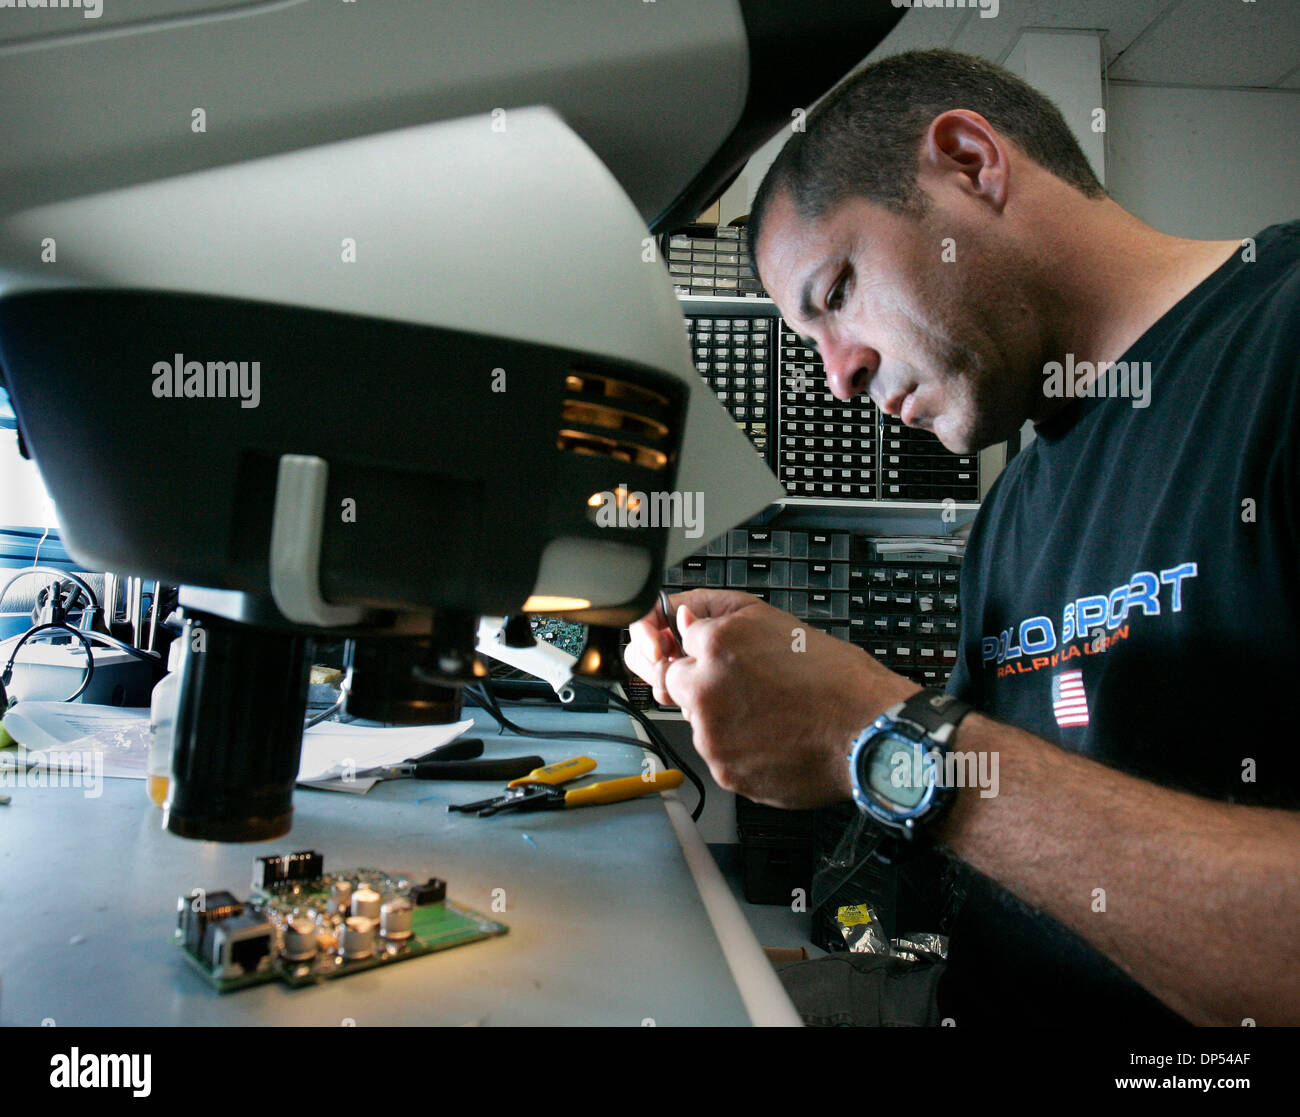 Aug 31, 2006; San Diego, CA, USA; Sensoria Corp. senior engineering technican DAVID BOYETT assembles a small printed circuit board using a microscope to aid in soldering small parts.  Sensoria Corp. makes wireless networks that are used not only by the military but also by universities and  municipalities that want to offer wireless, high-speed Internet access outdoors.  Mandatory  - Stock Image